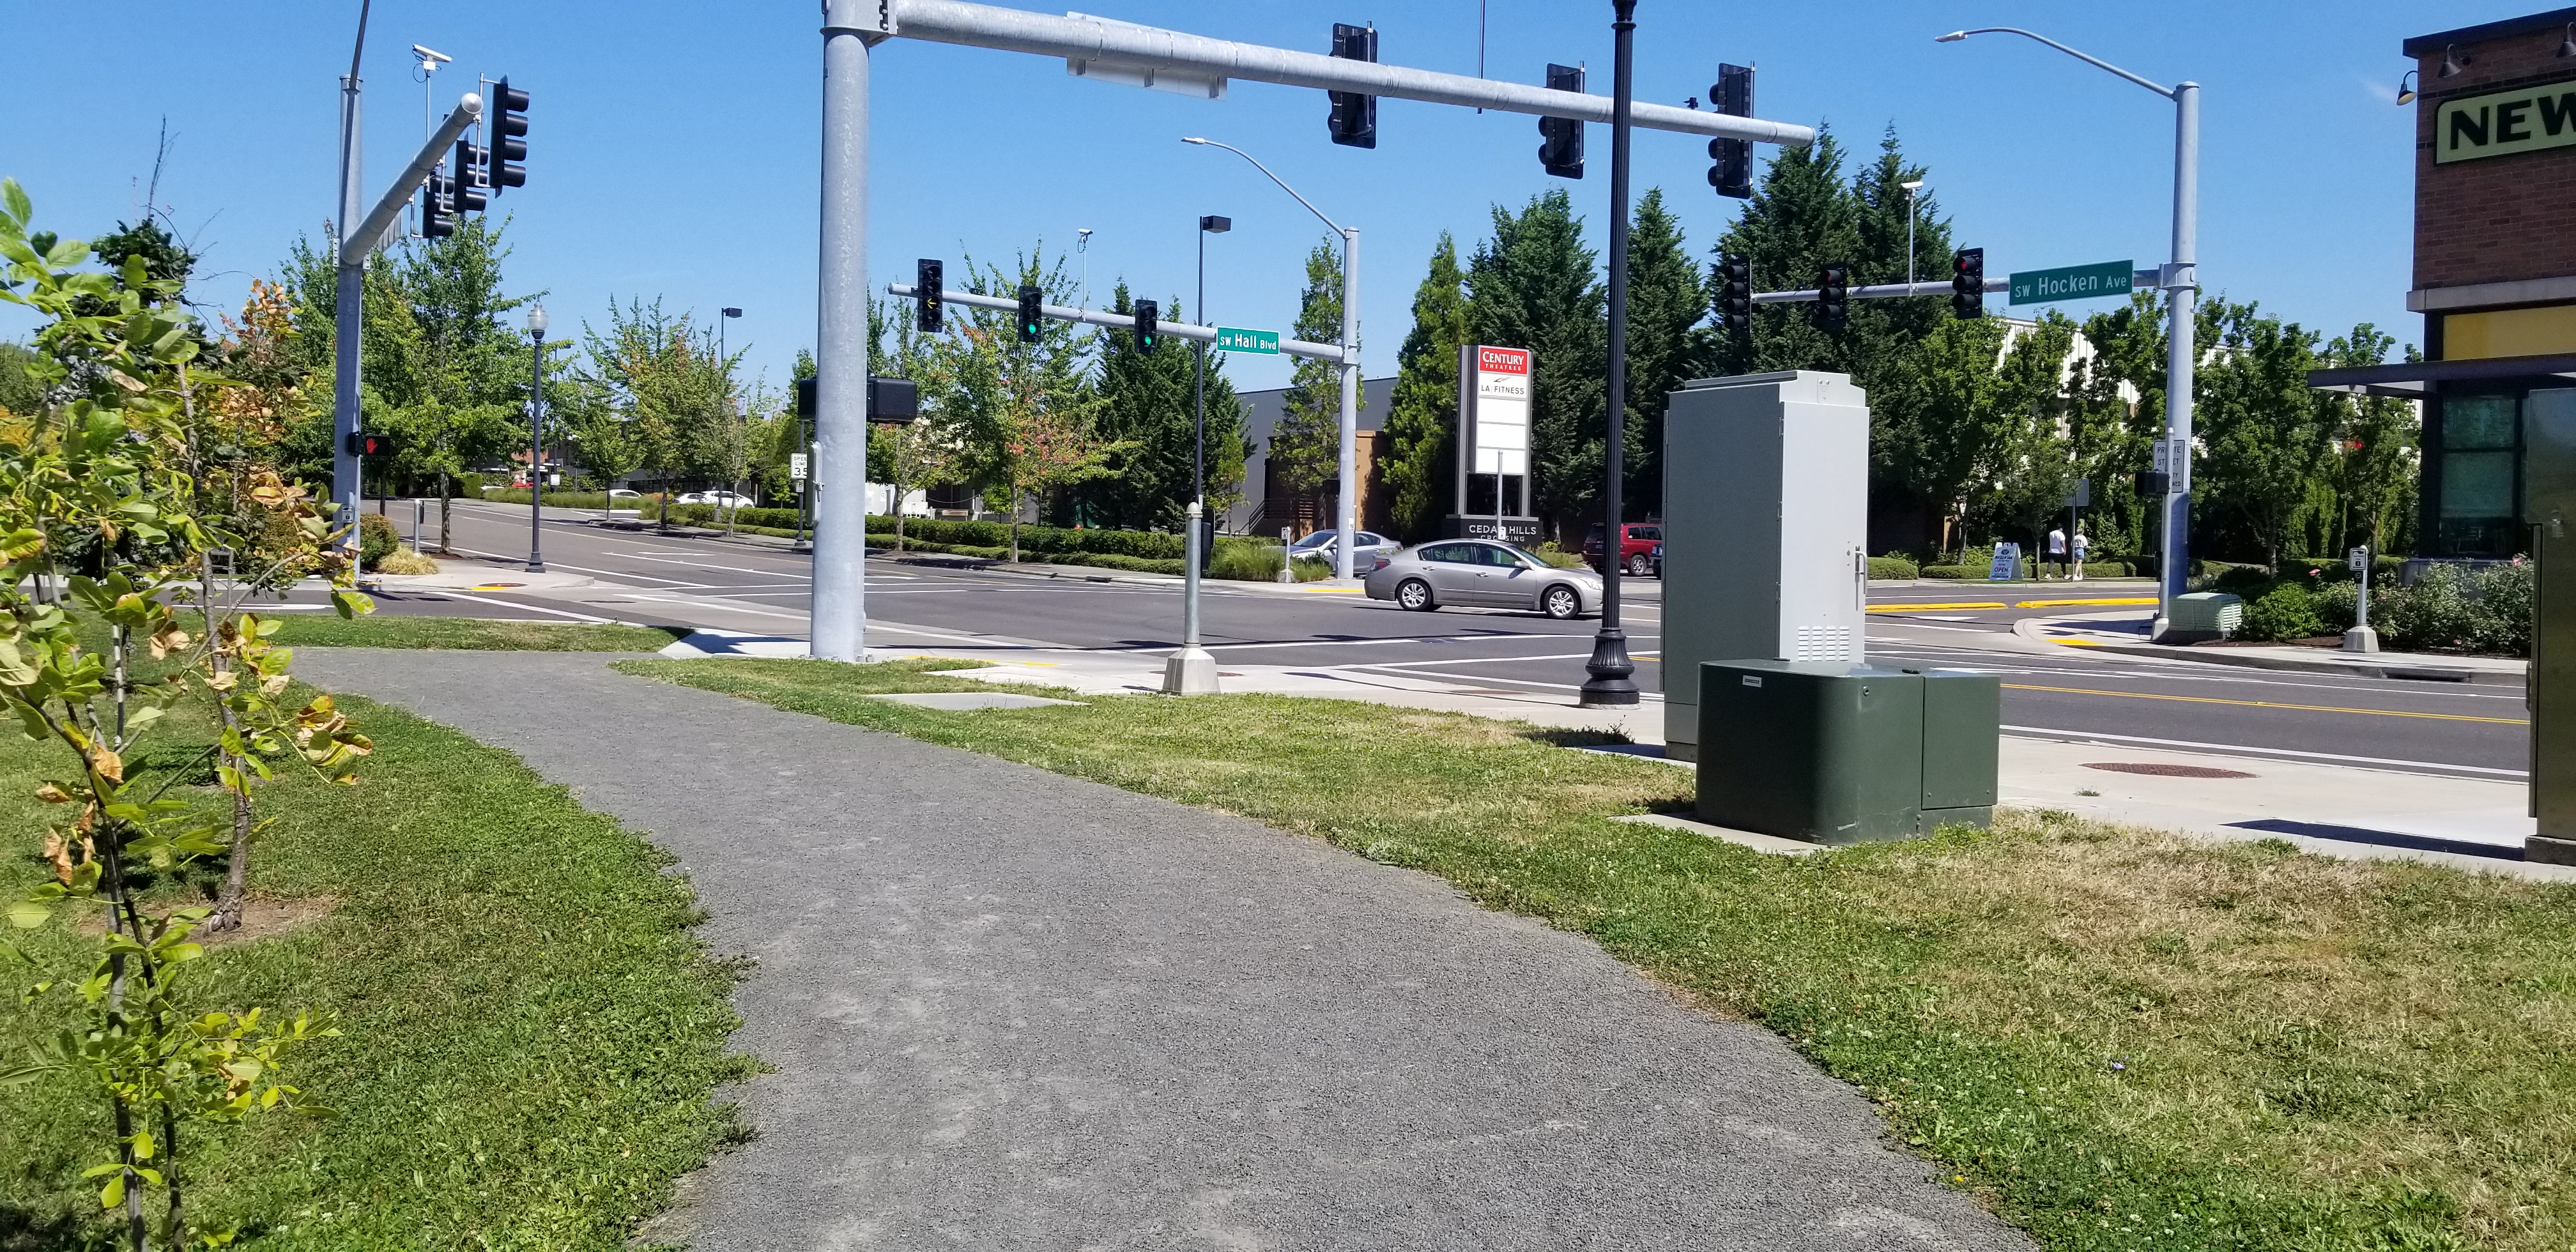 Intersection of SW Hocken Ave & SW Hall Blvd